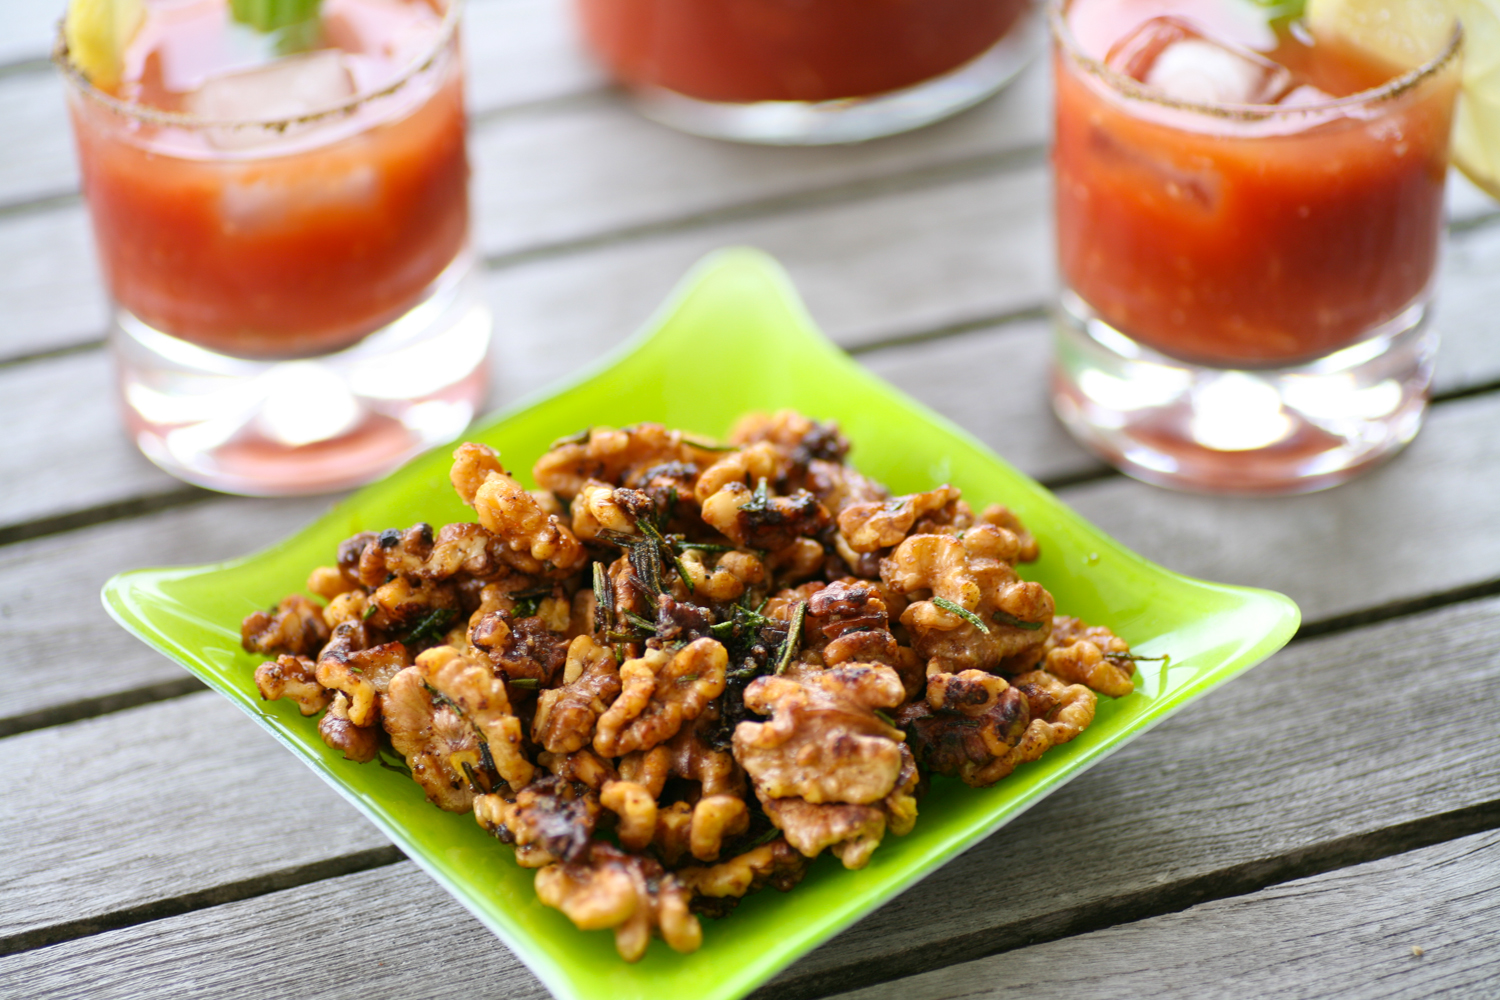 Spicy Virgin Mary with Rosemary Spiced Walnuts |